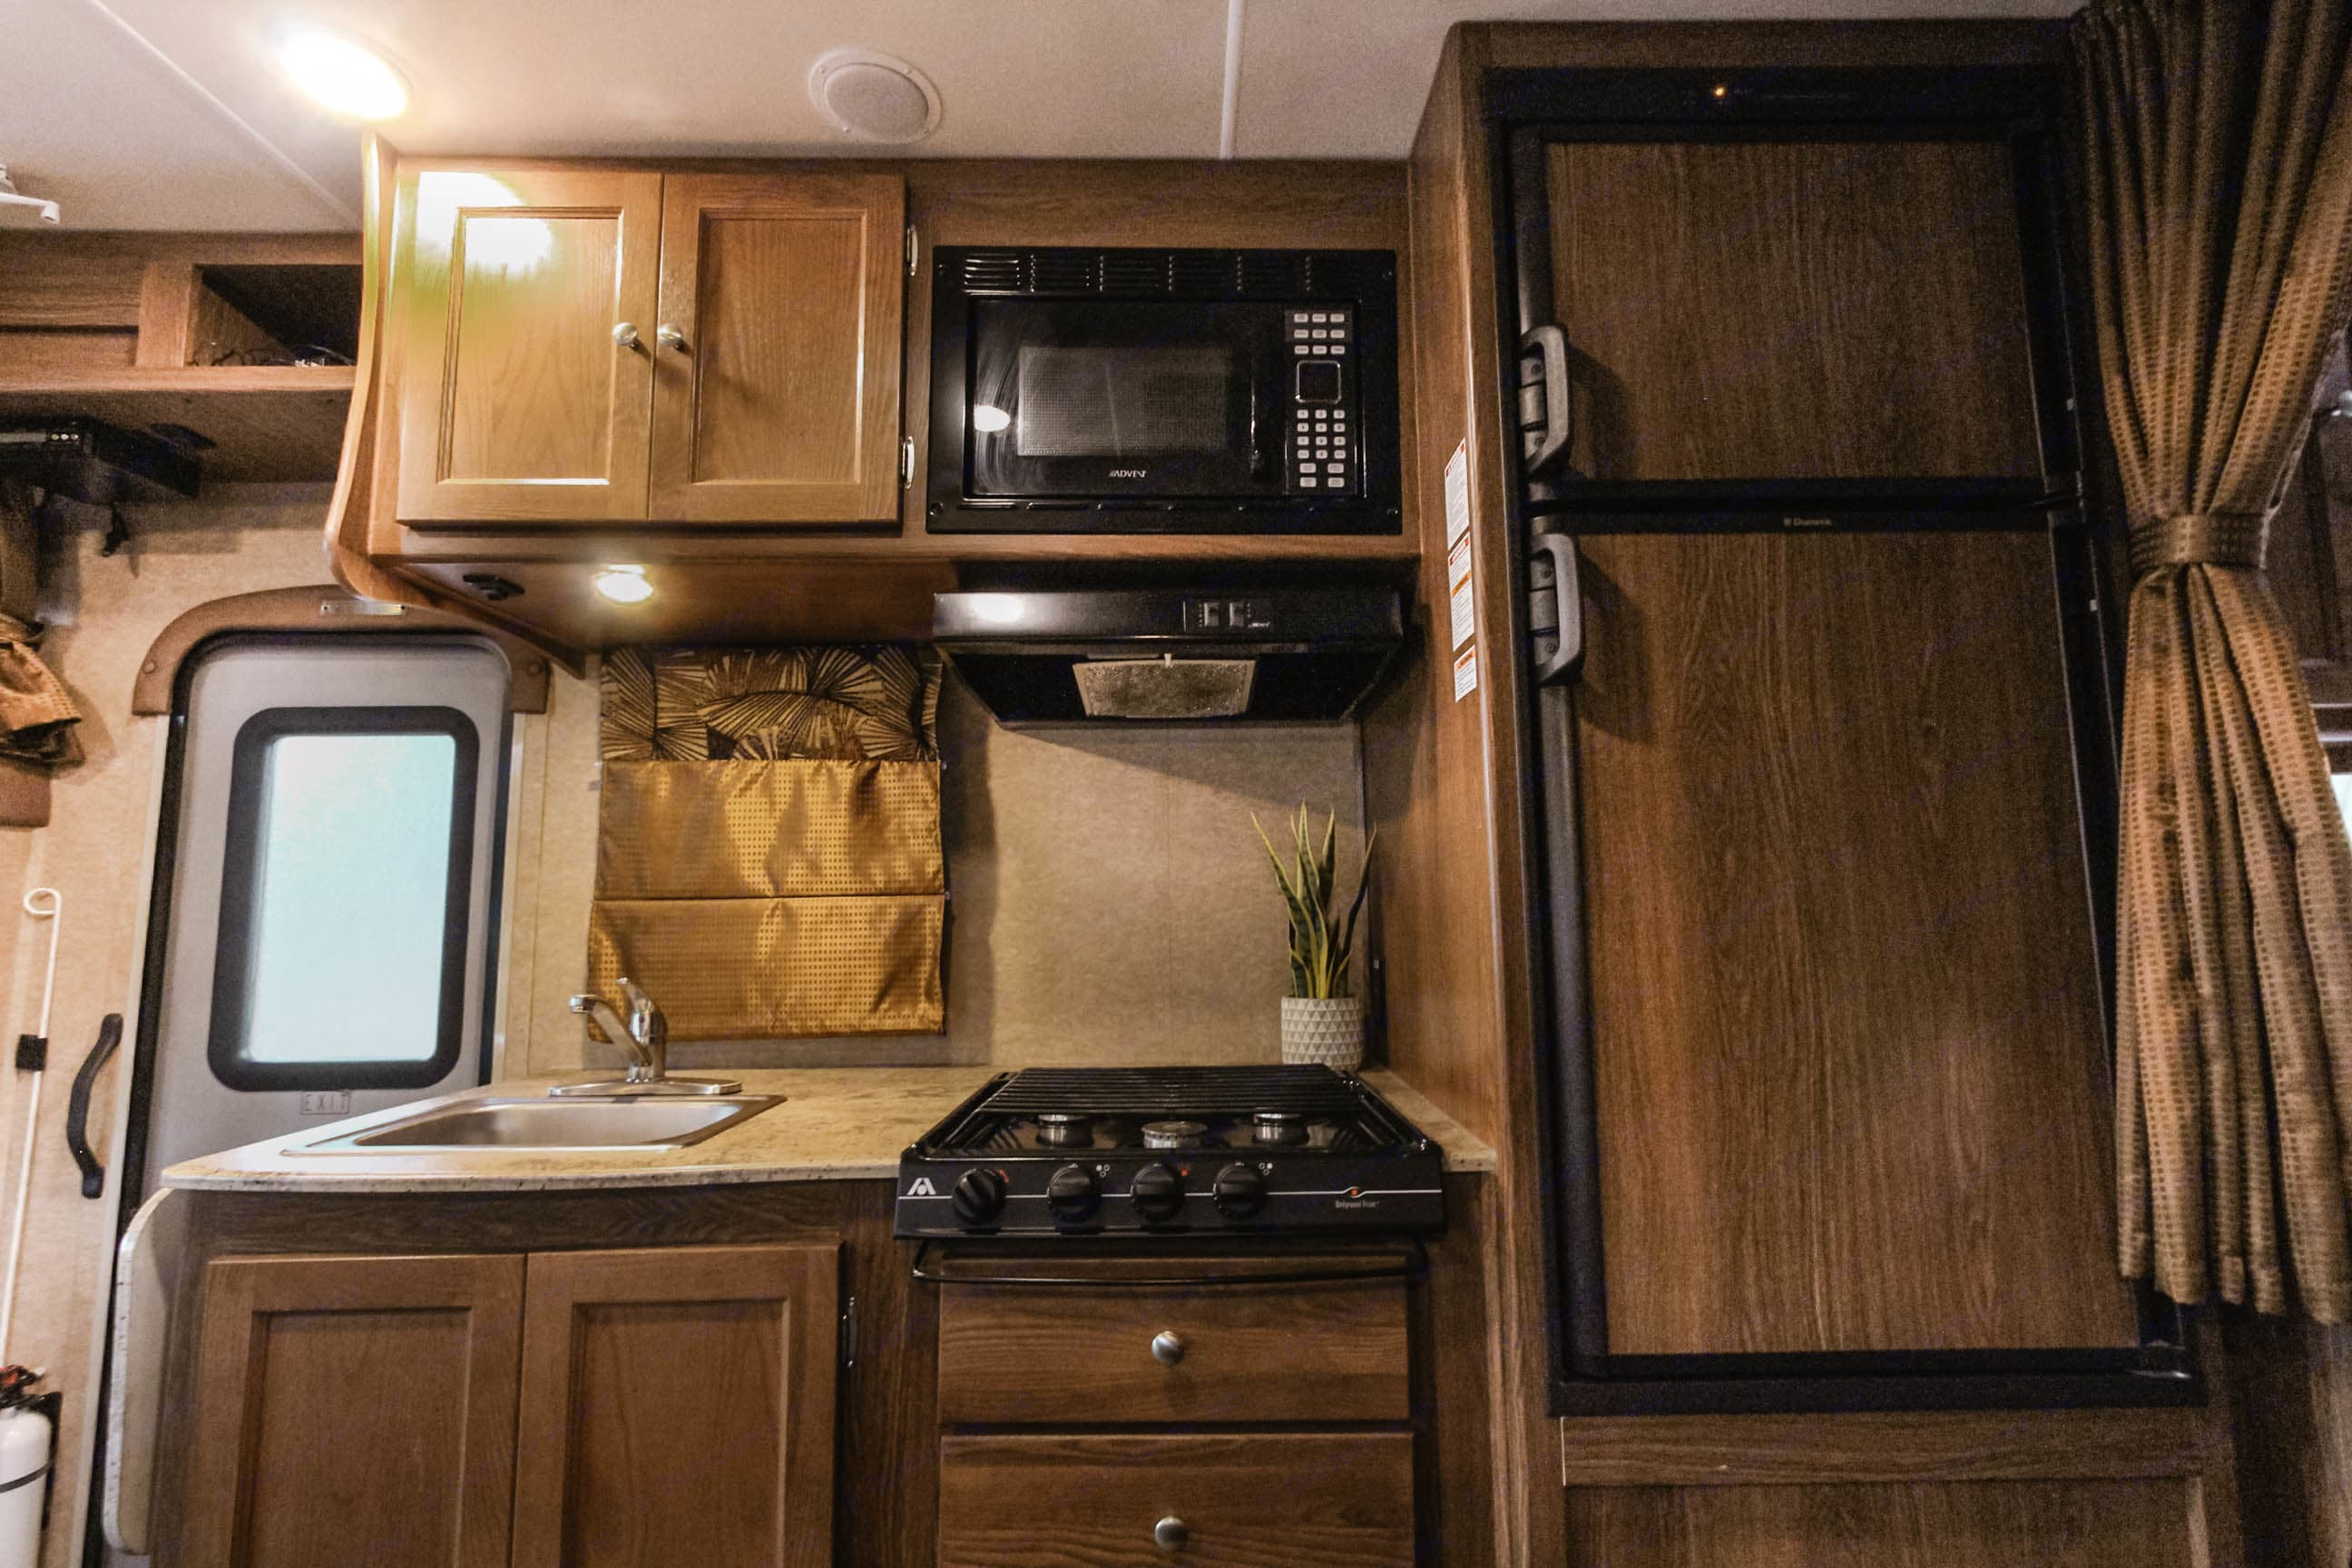 Fully equipped kitchen icluded. Coachmen Leprechaun 220QB 2016